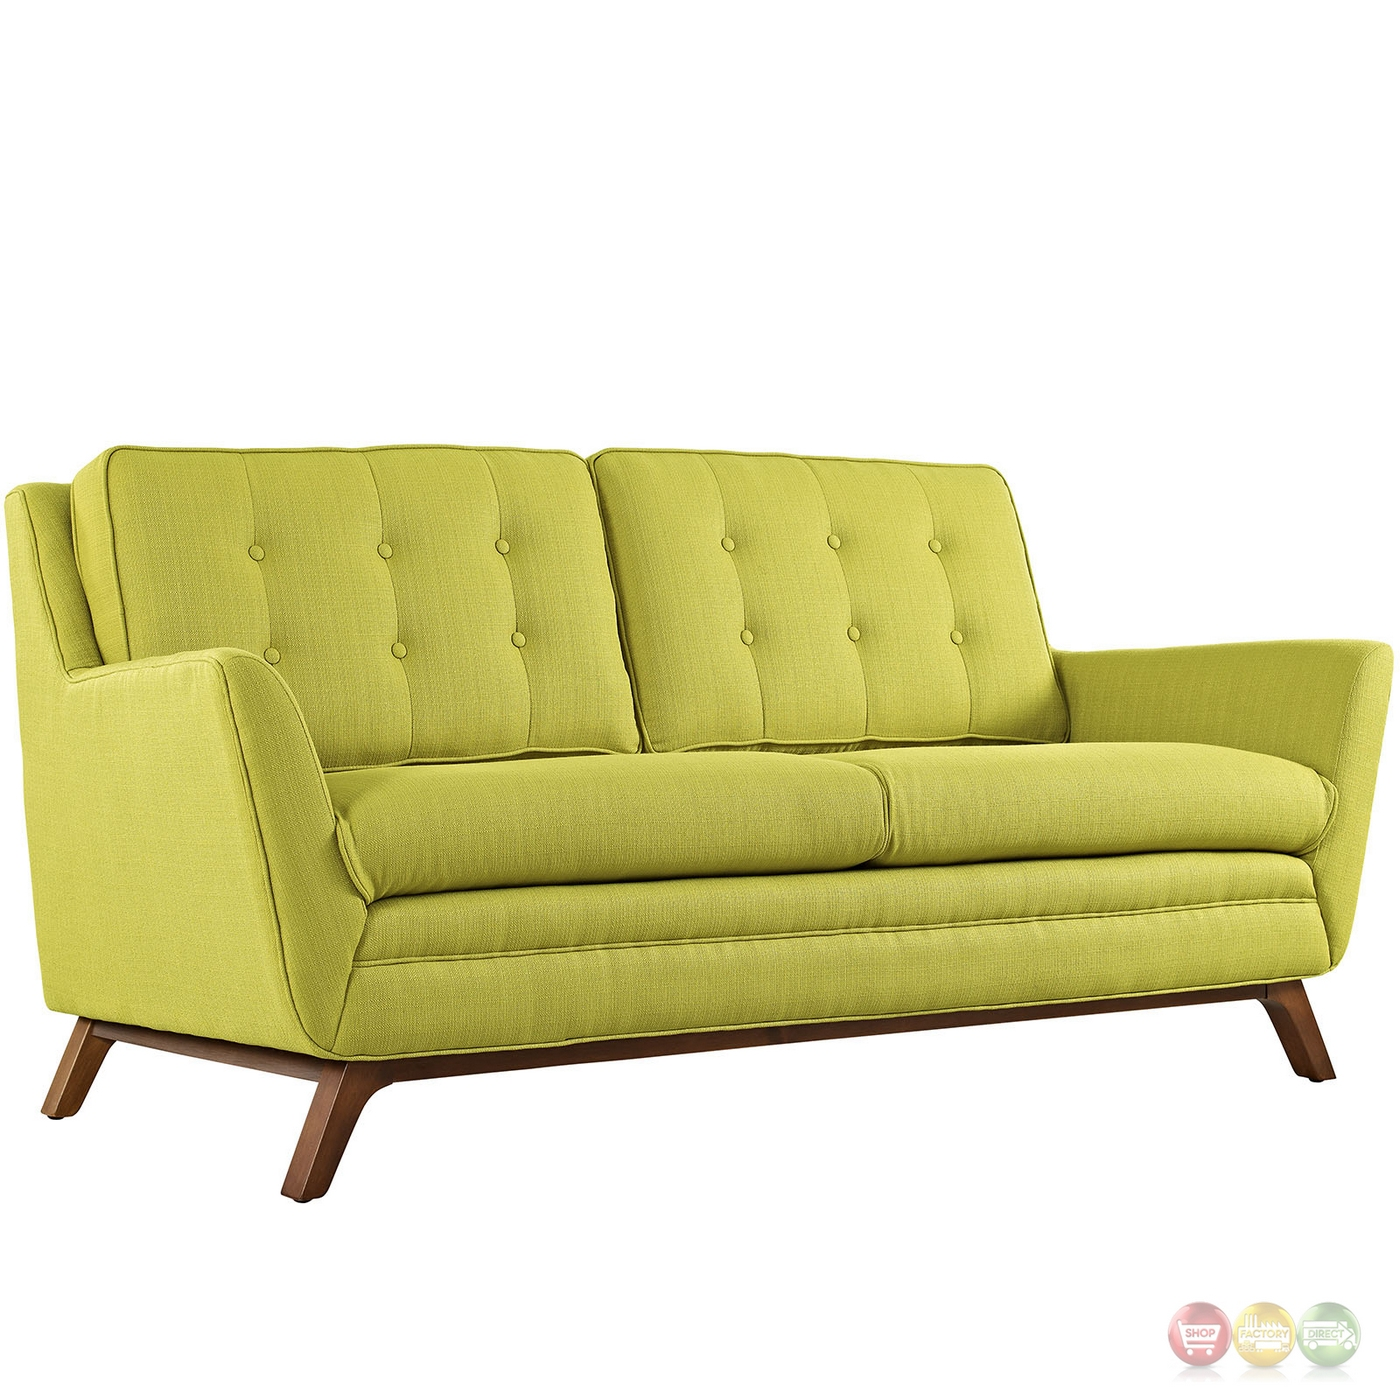 Mid-Century Modern Beguile 2pc Loveseat & Armchair Living